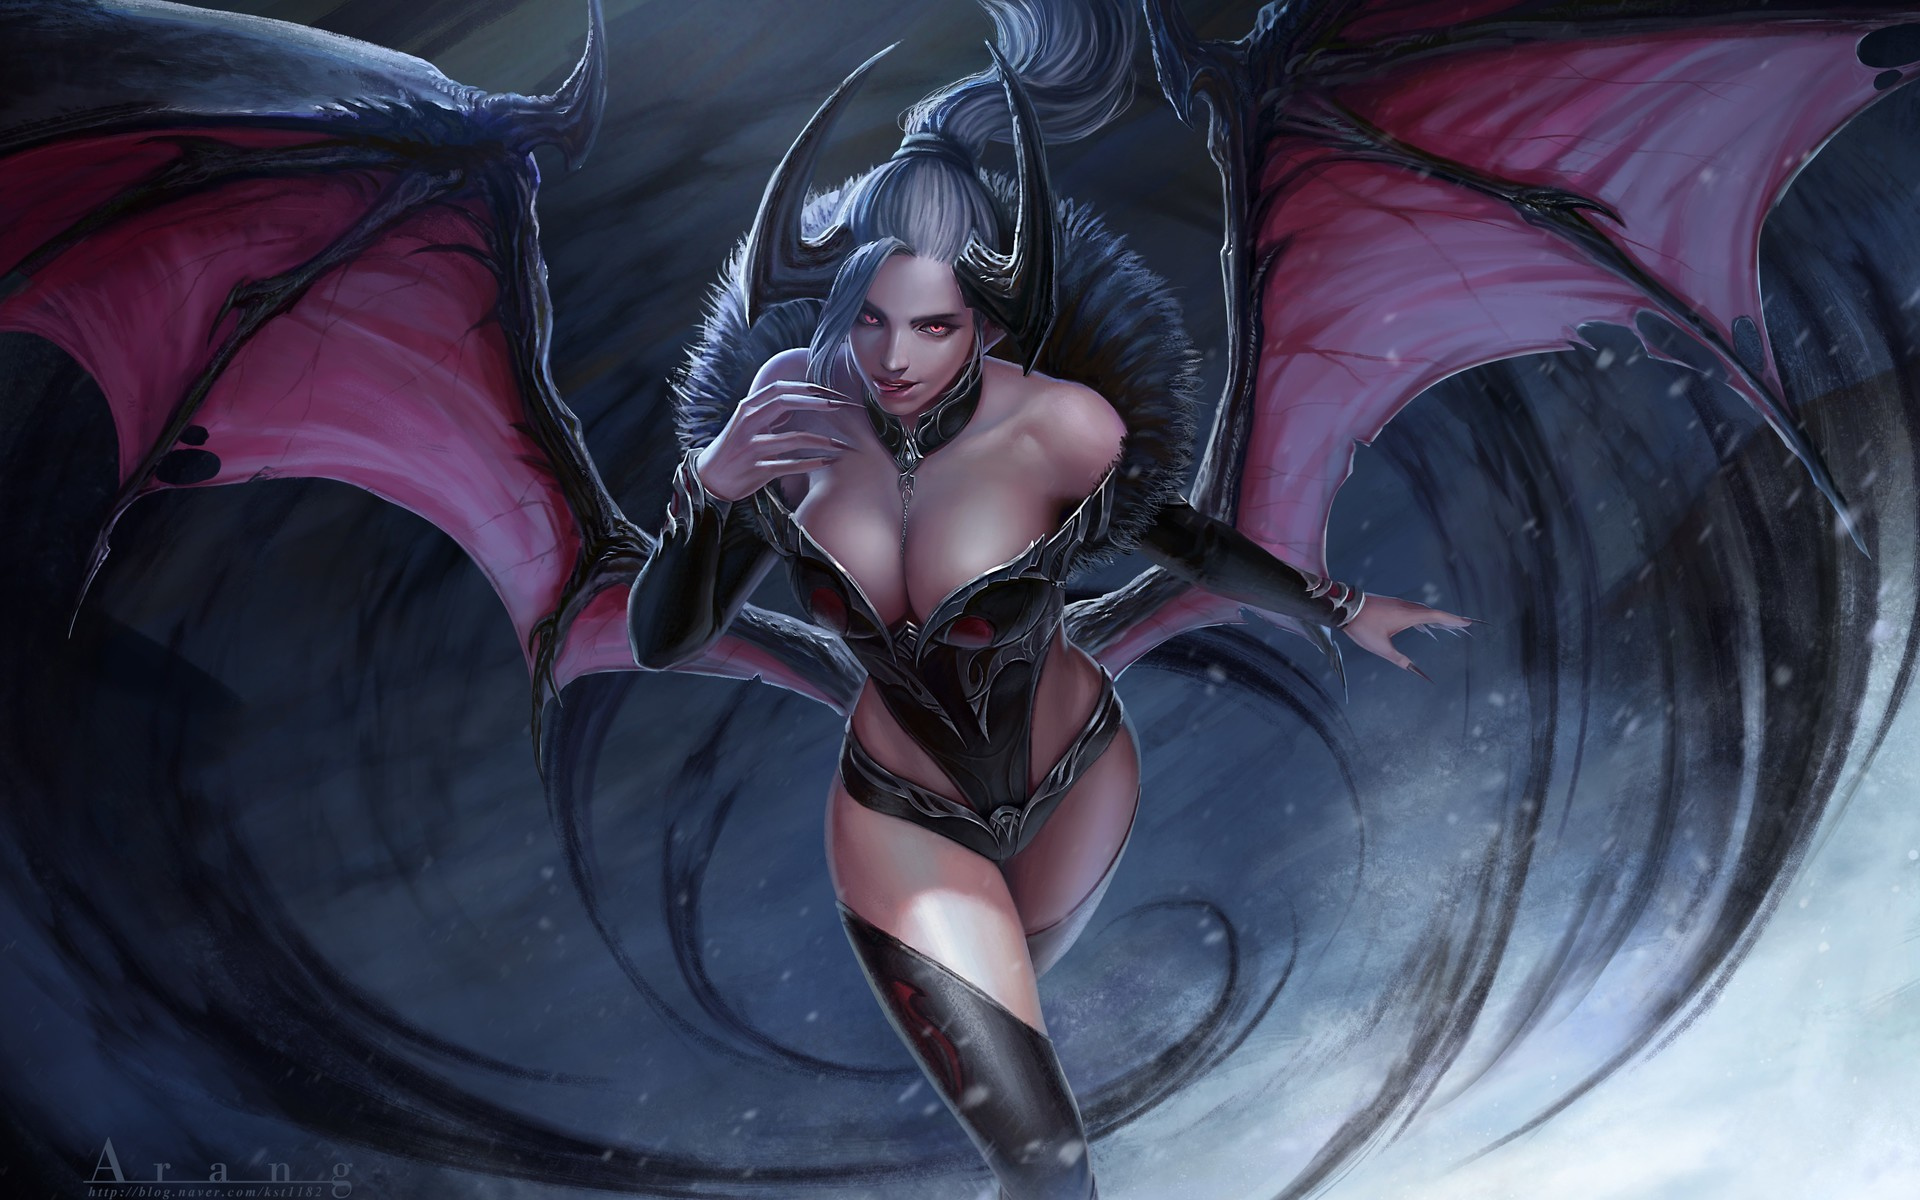 Winged succubus erotic fantasy xxx girl